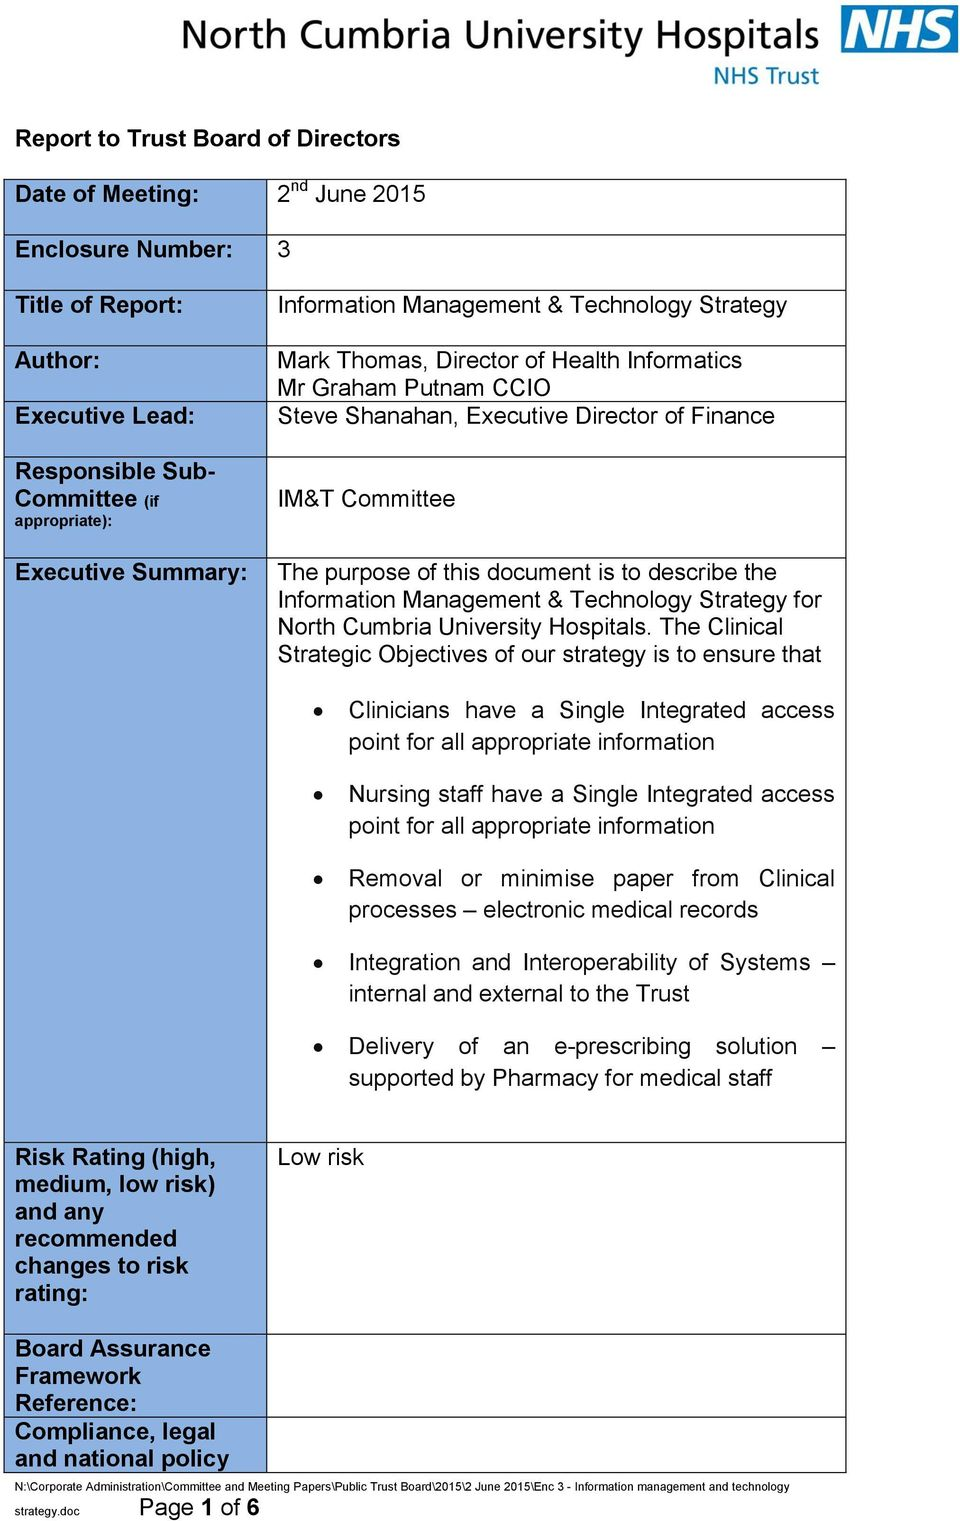 document is to describe the Information Management & Technology Strategy for North Cumbria University Hospitals.